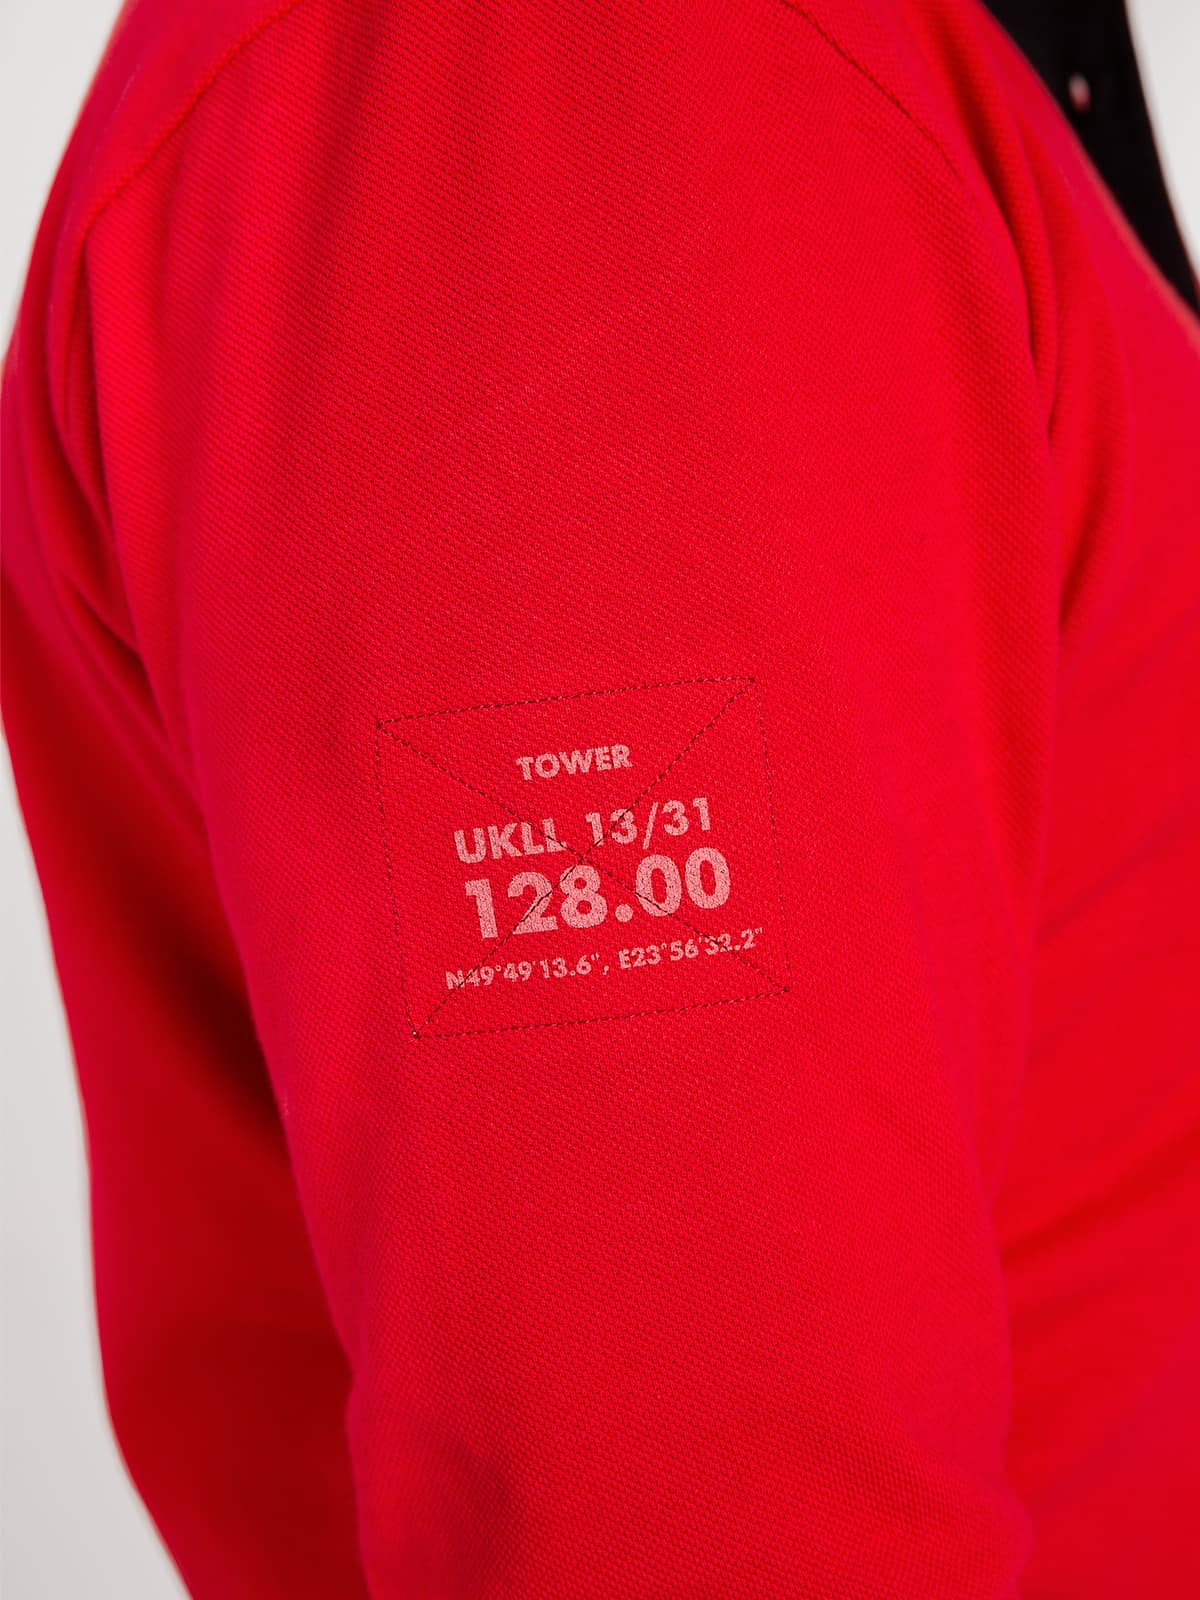 Men's Polo Long Lviv. Color red.  Size worn by the model: М Height of the model: 182 cm.